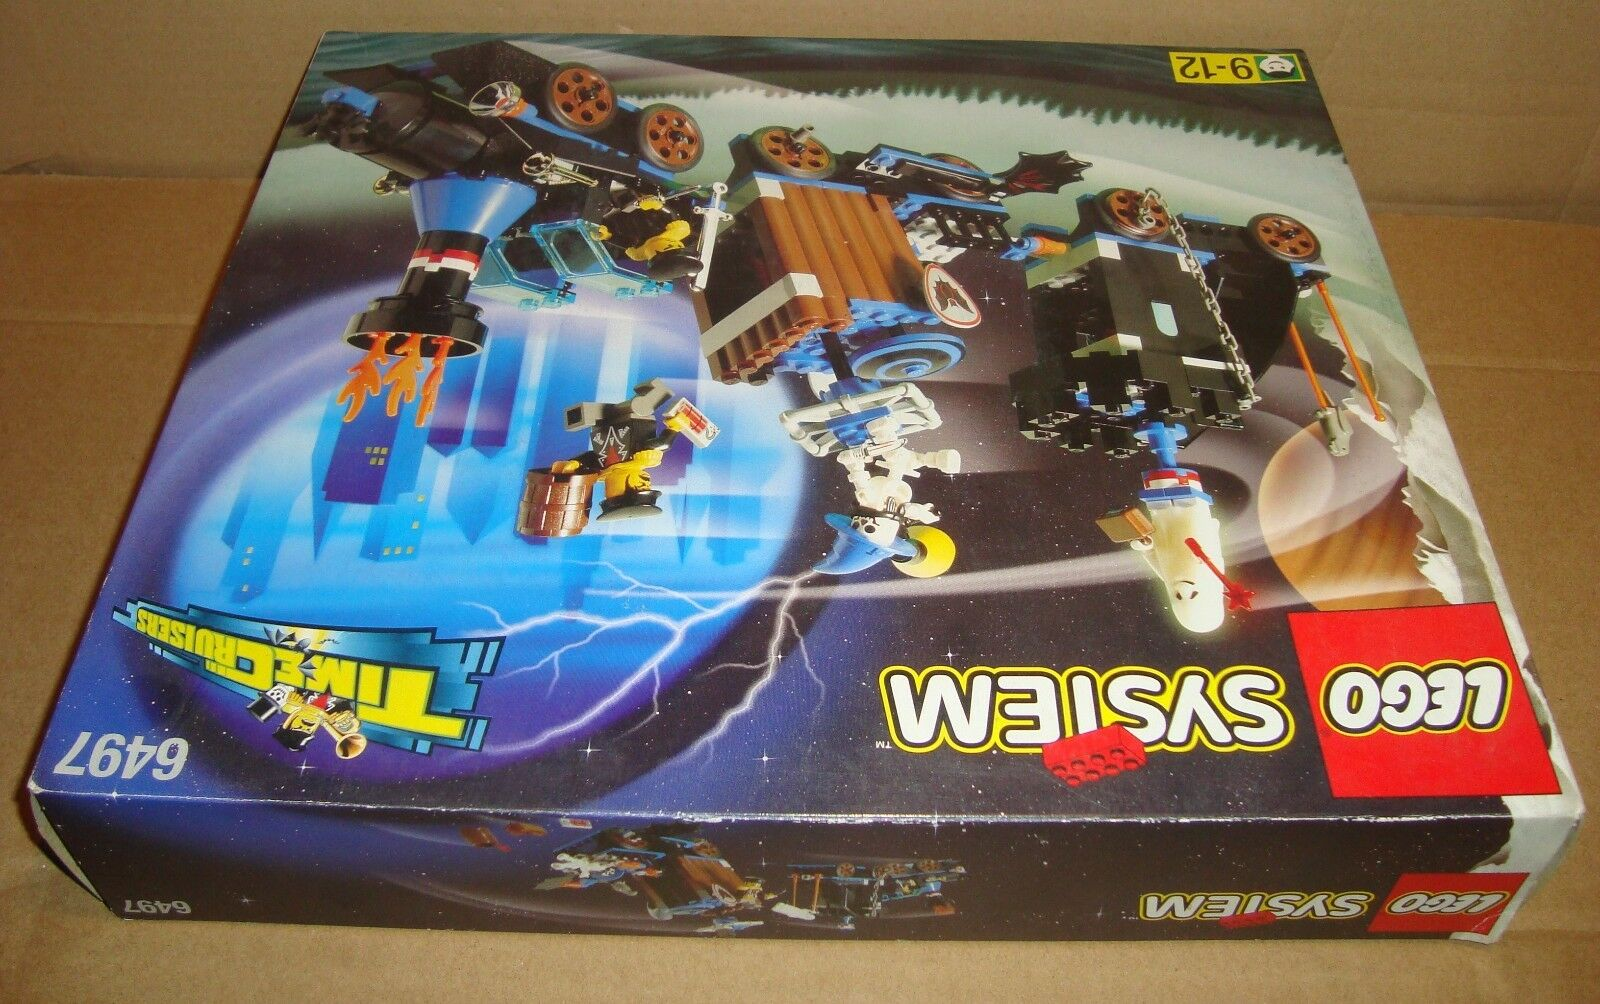 LEGO SYSTEM 6497 TIME TIME CRUISERS TWISTED TIME TIME TRAIN LEGO 1997 2e3c9f